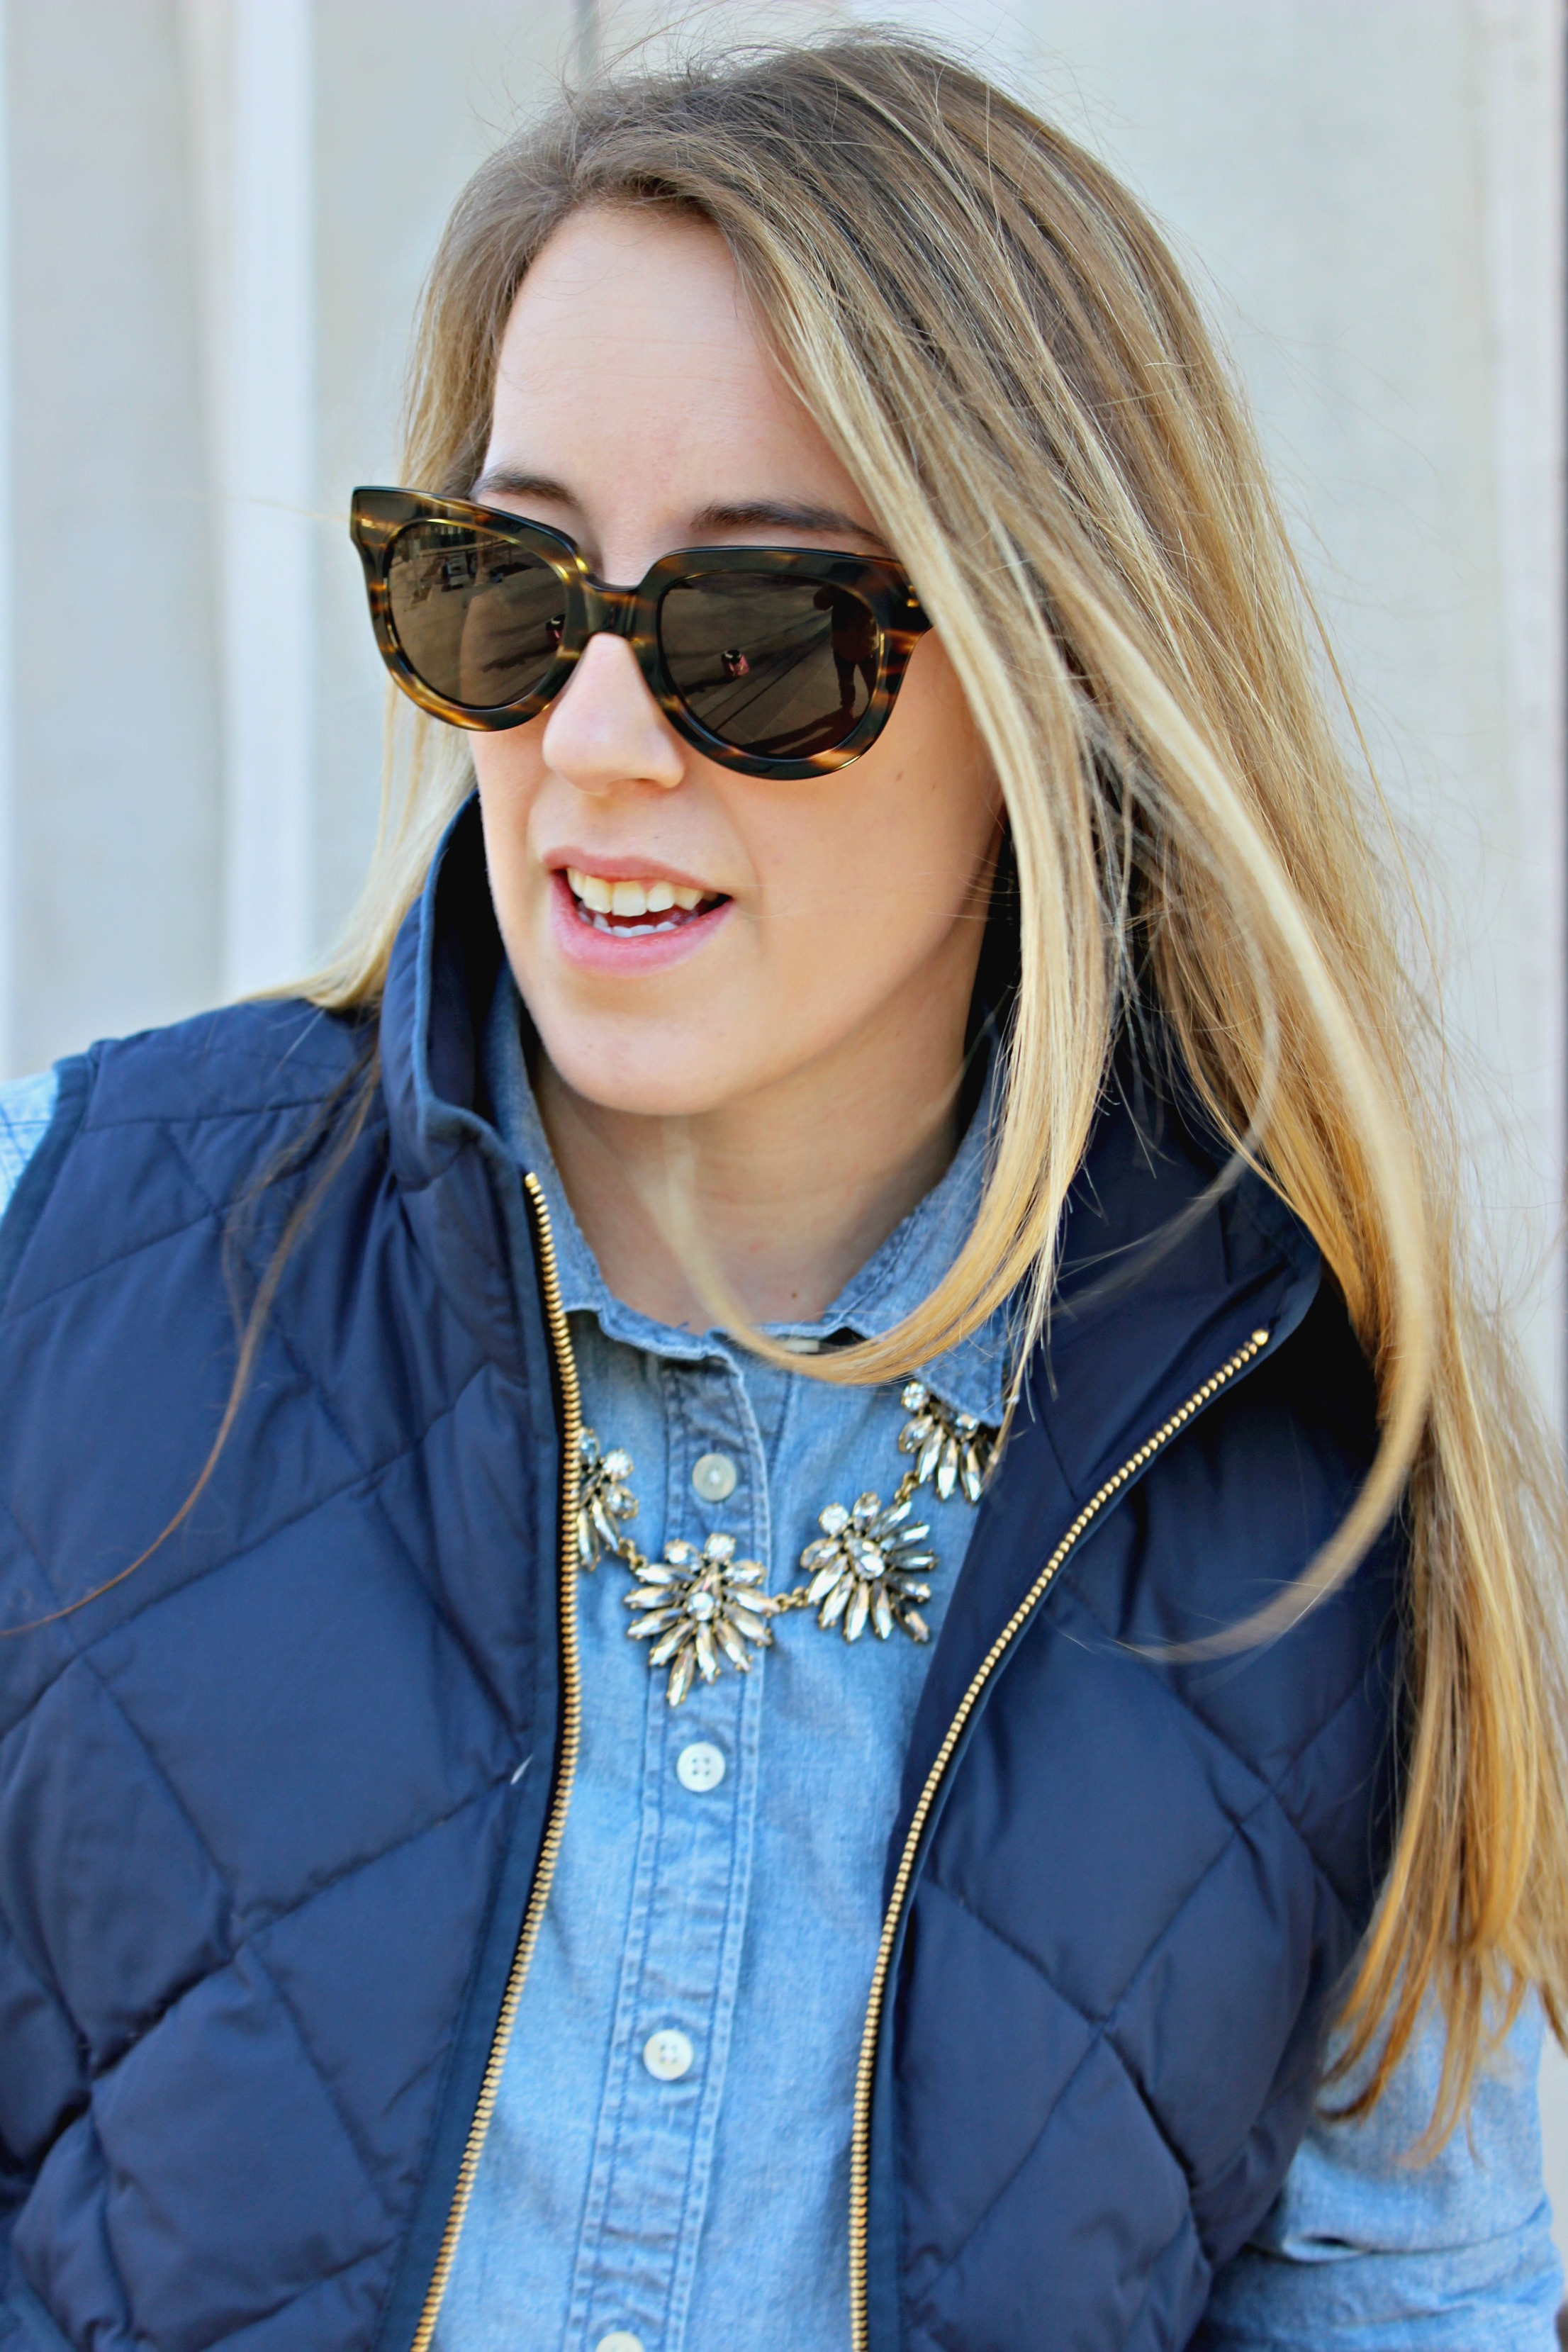 Wearing: blend in to blue chambray // how to pair a statement necklace with a blue monochrome outfit